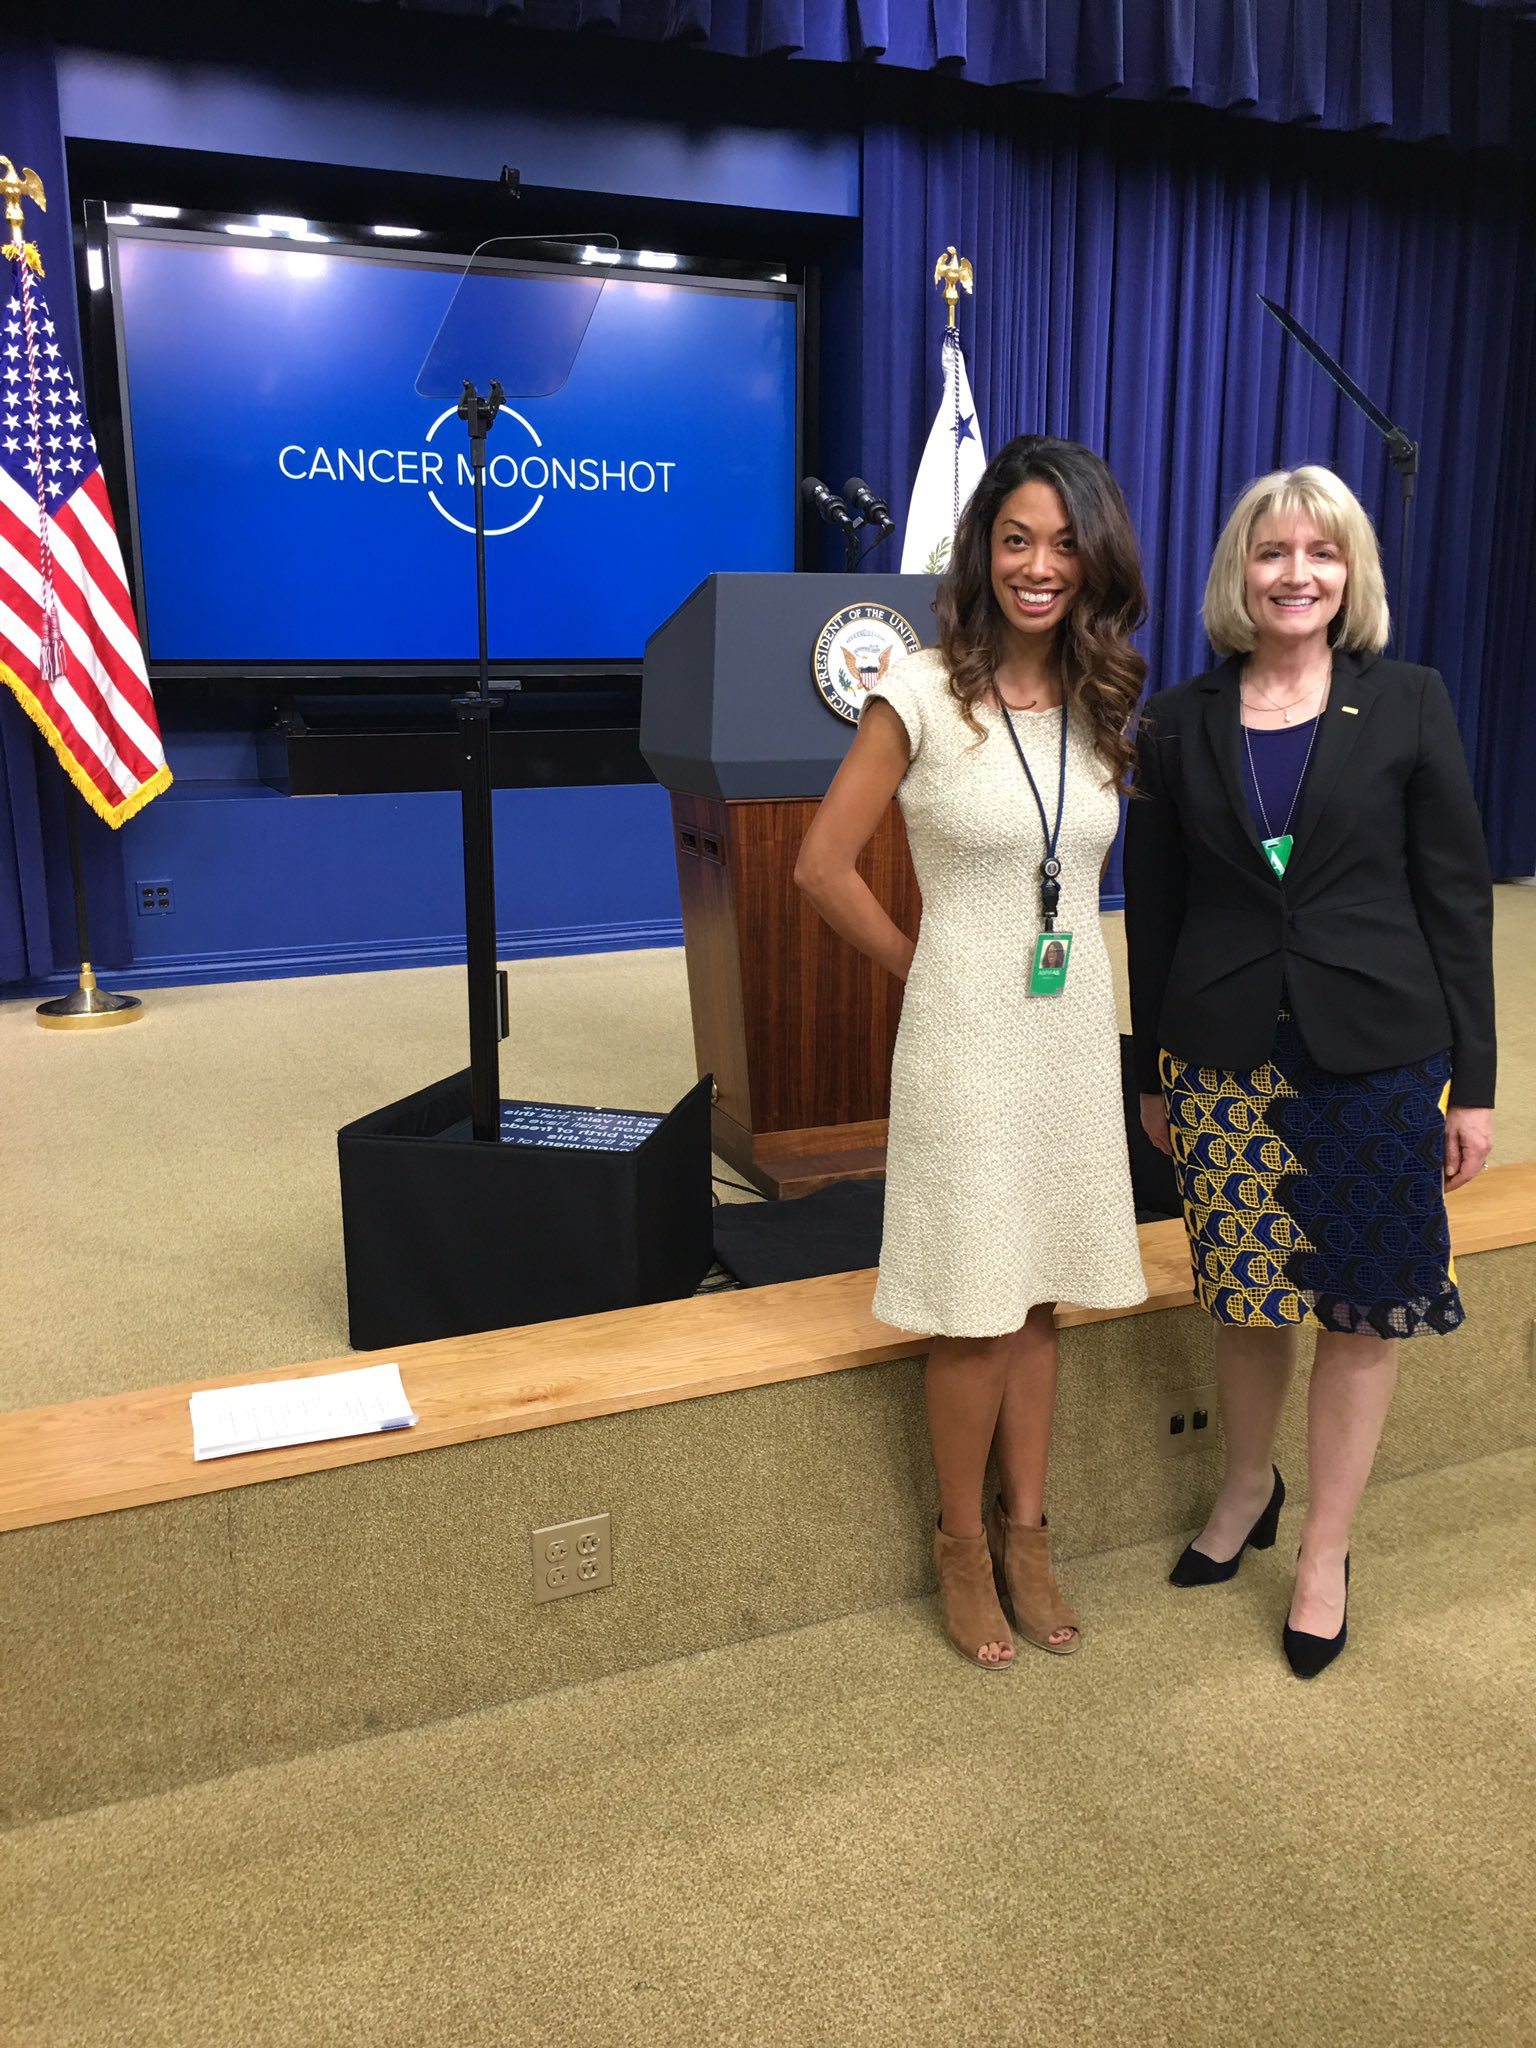 With Anabella Aspiras at #cancermoonshot-great meeting! Looking forward to sharing at #ACCCNOC https://t.co/Q8JW3m1BRH